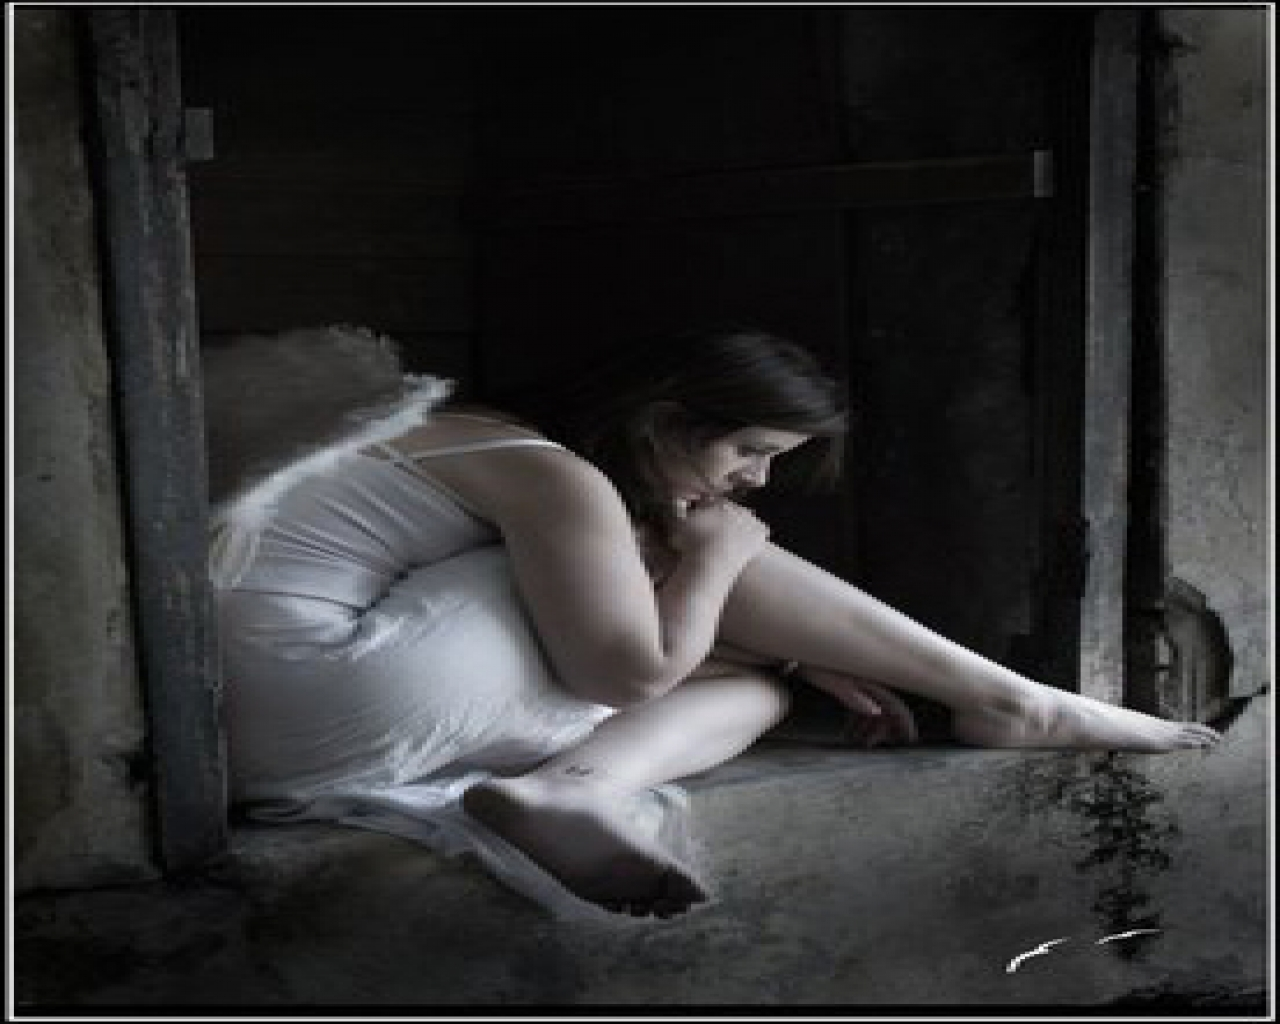 Alone Sad Girl Wallpaper 1280x1024 pixel Popular HD Wallpaper 5255 1280x1024